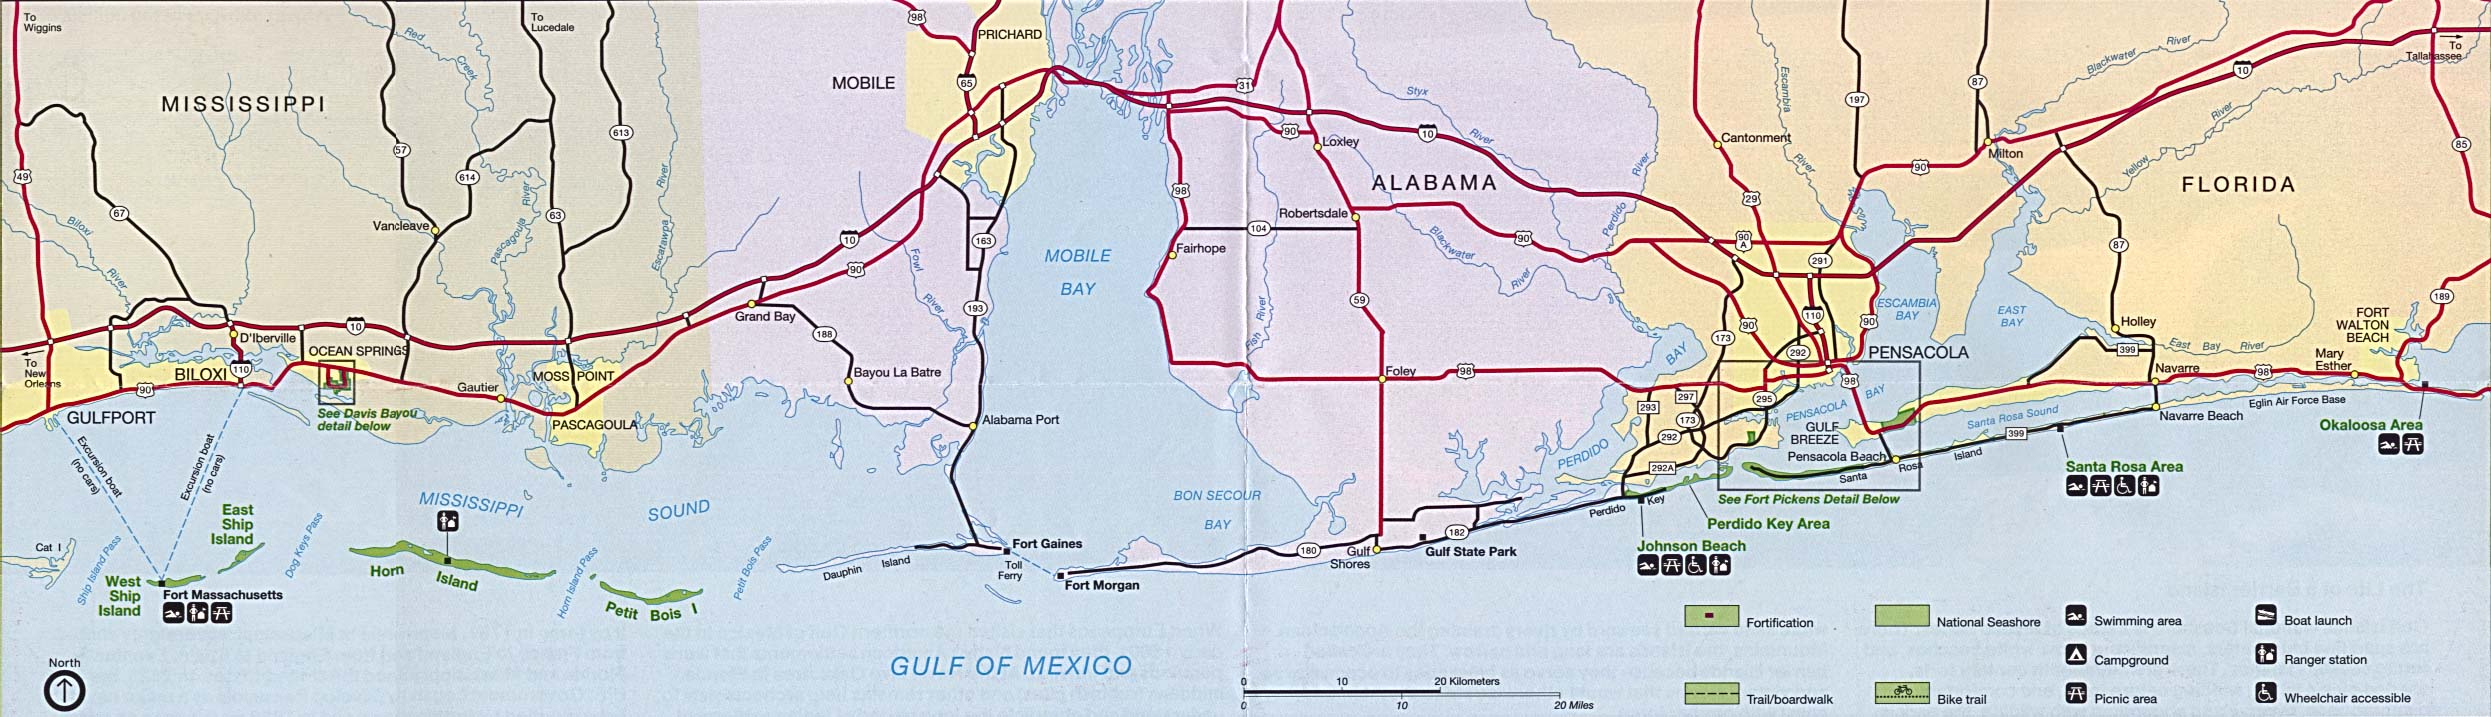 Detailed Map Of Florida Gulf Coast And Travel Information | Download - Florida Gulf Map